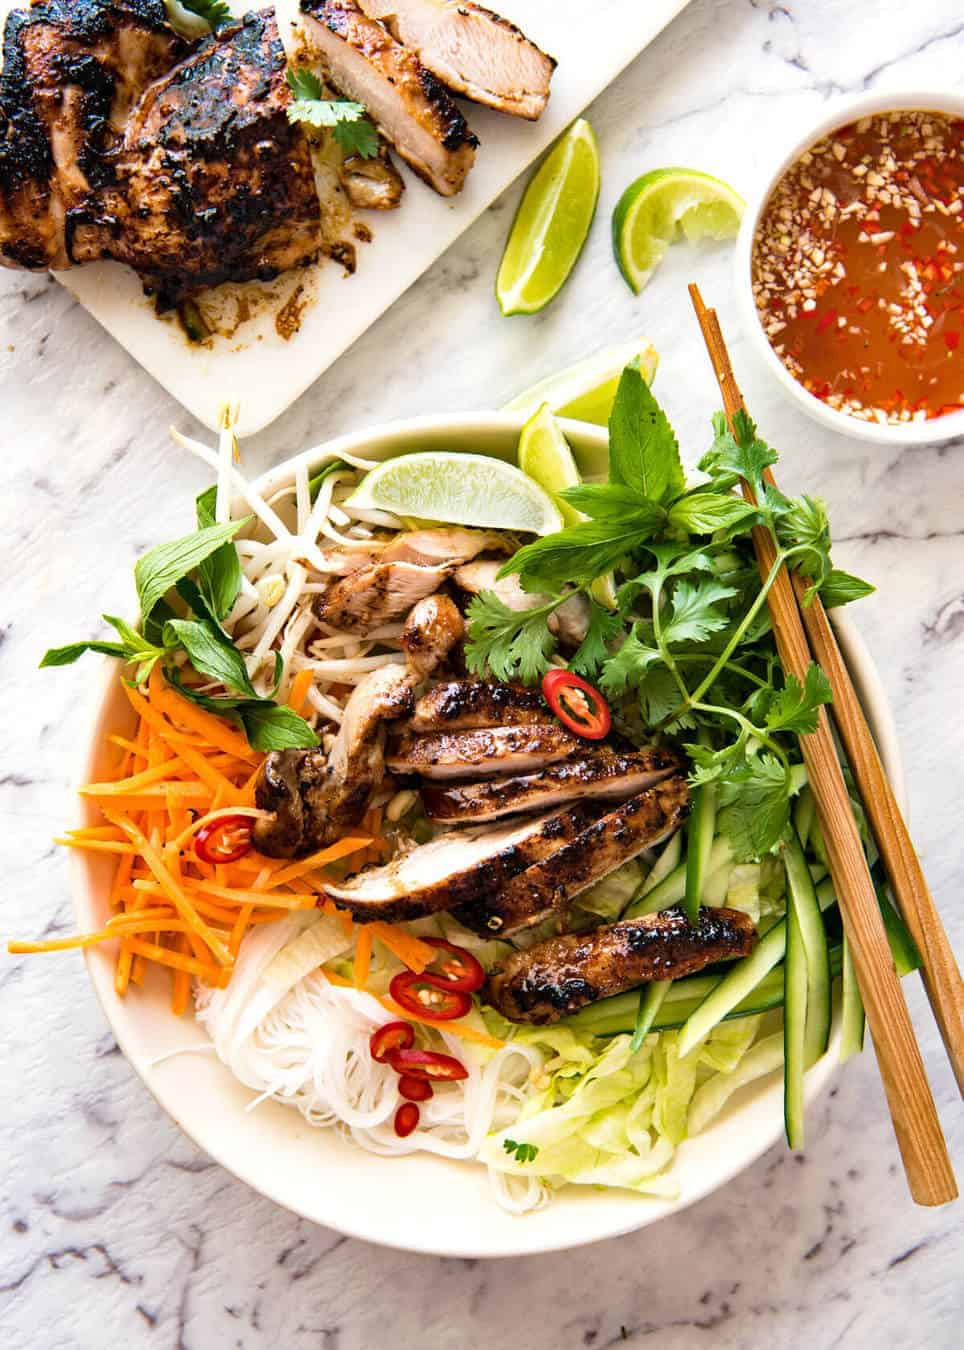 Vietnamese Noodles with Lemongrass Chicken (Bun Ga Nuong) - The popular Vietnamese dish made with Vermicelli noodles topped with fresh vegetables, lemongrass marinated chicken and drizzled with Nuoc Cham. Absolutely lip smackingly delicious! www.recipetineats.com